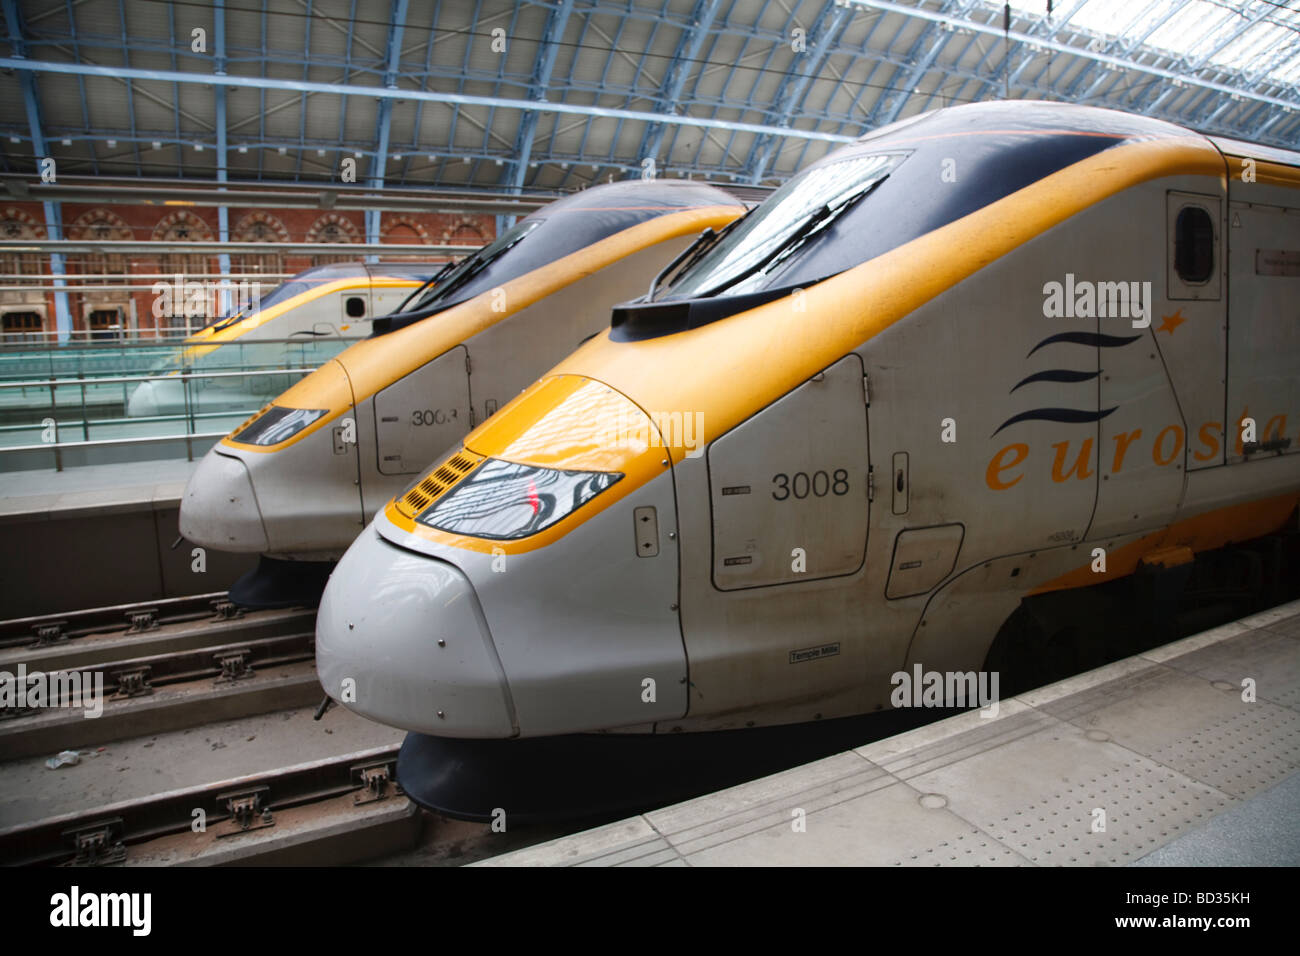 Eurostar trains stand on a platform at St Pancras International Station, London, UK - Stock Image